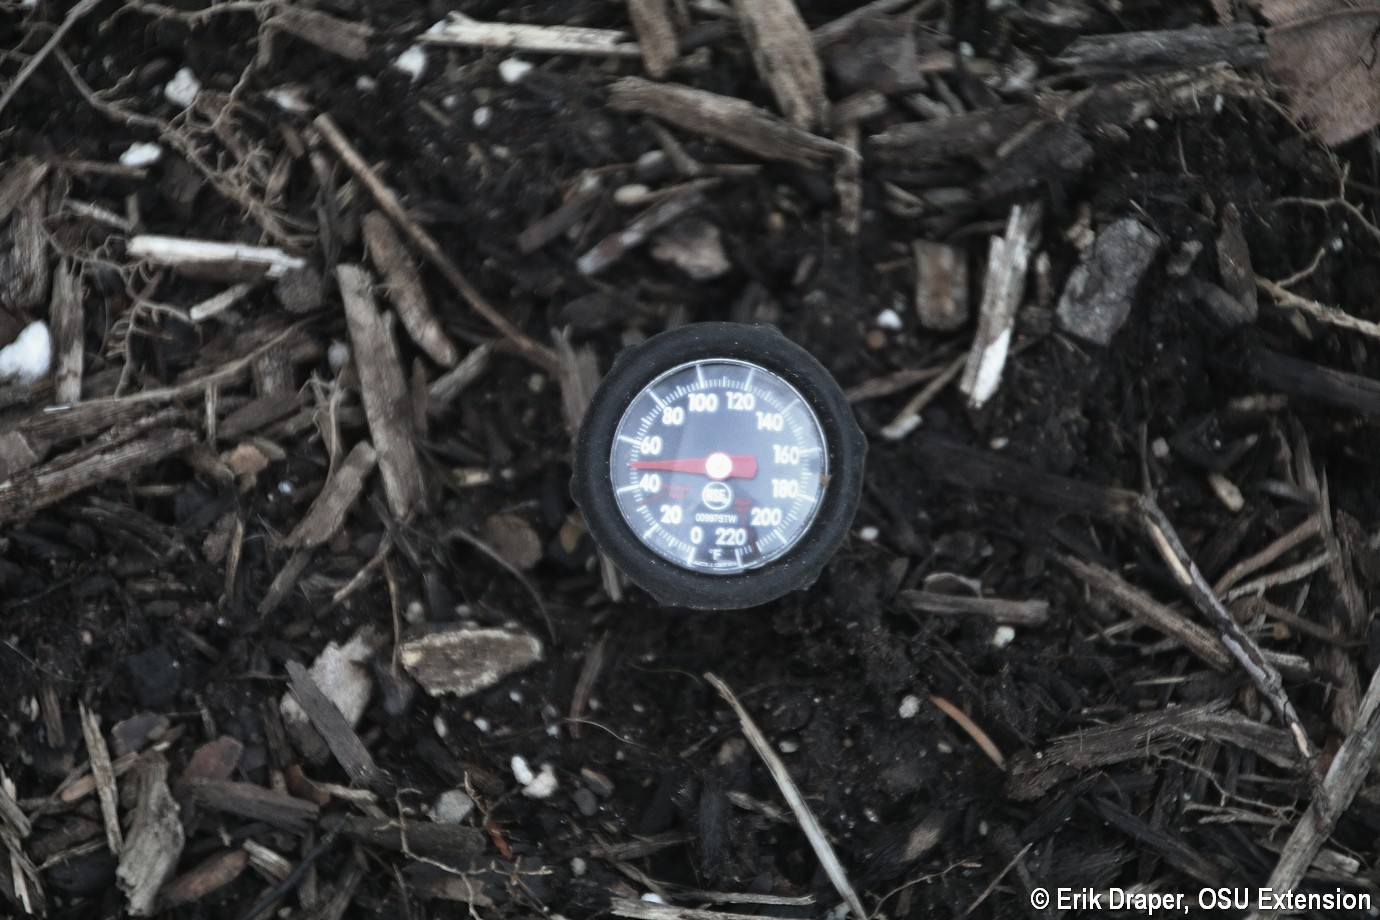 Soil thermometer 50F